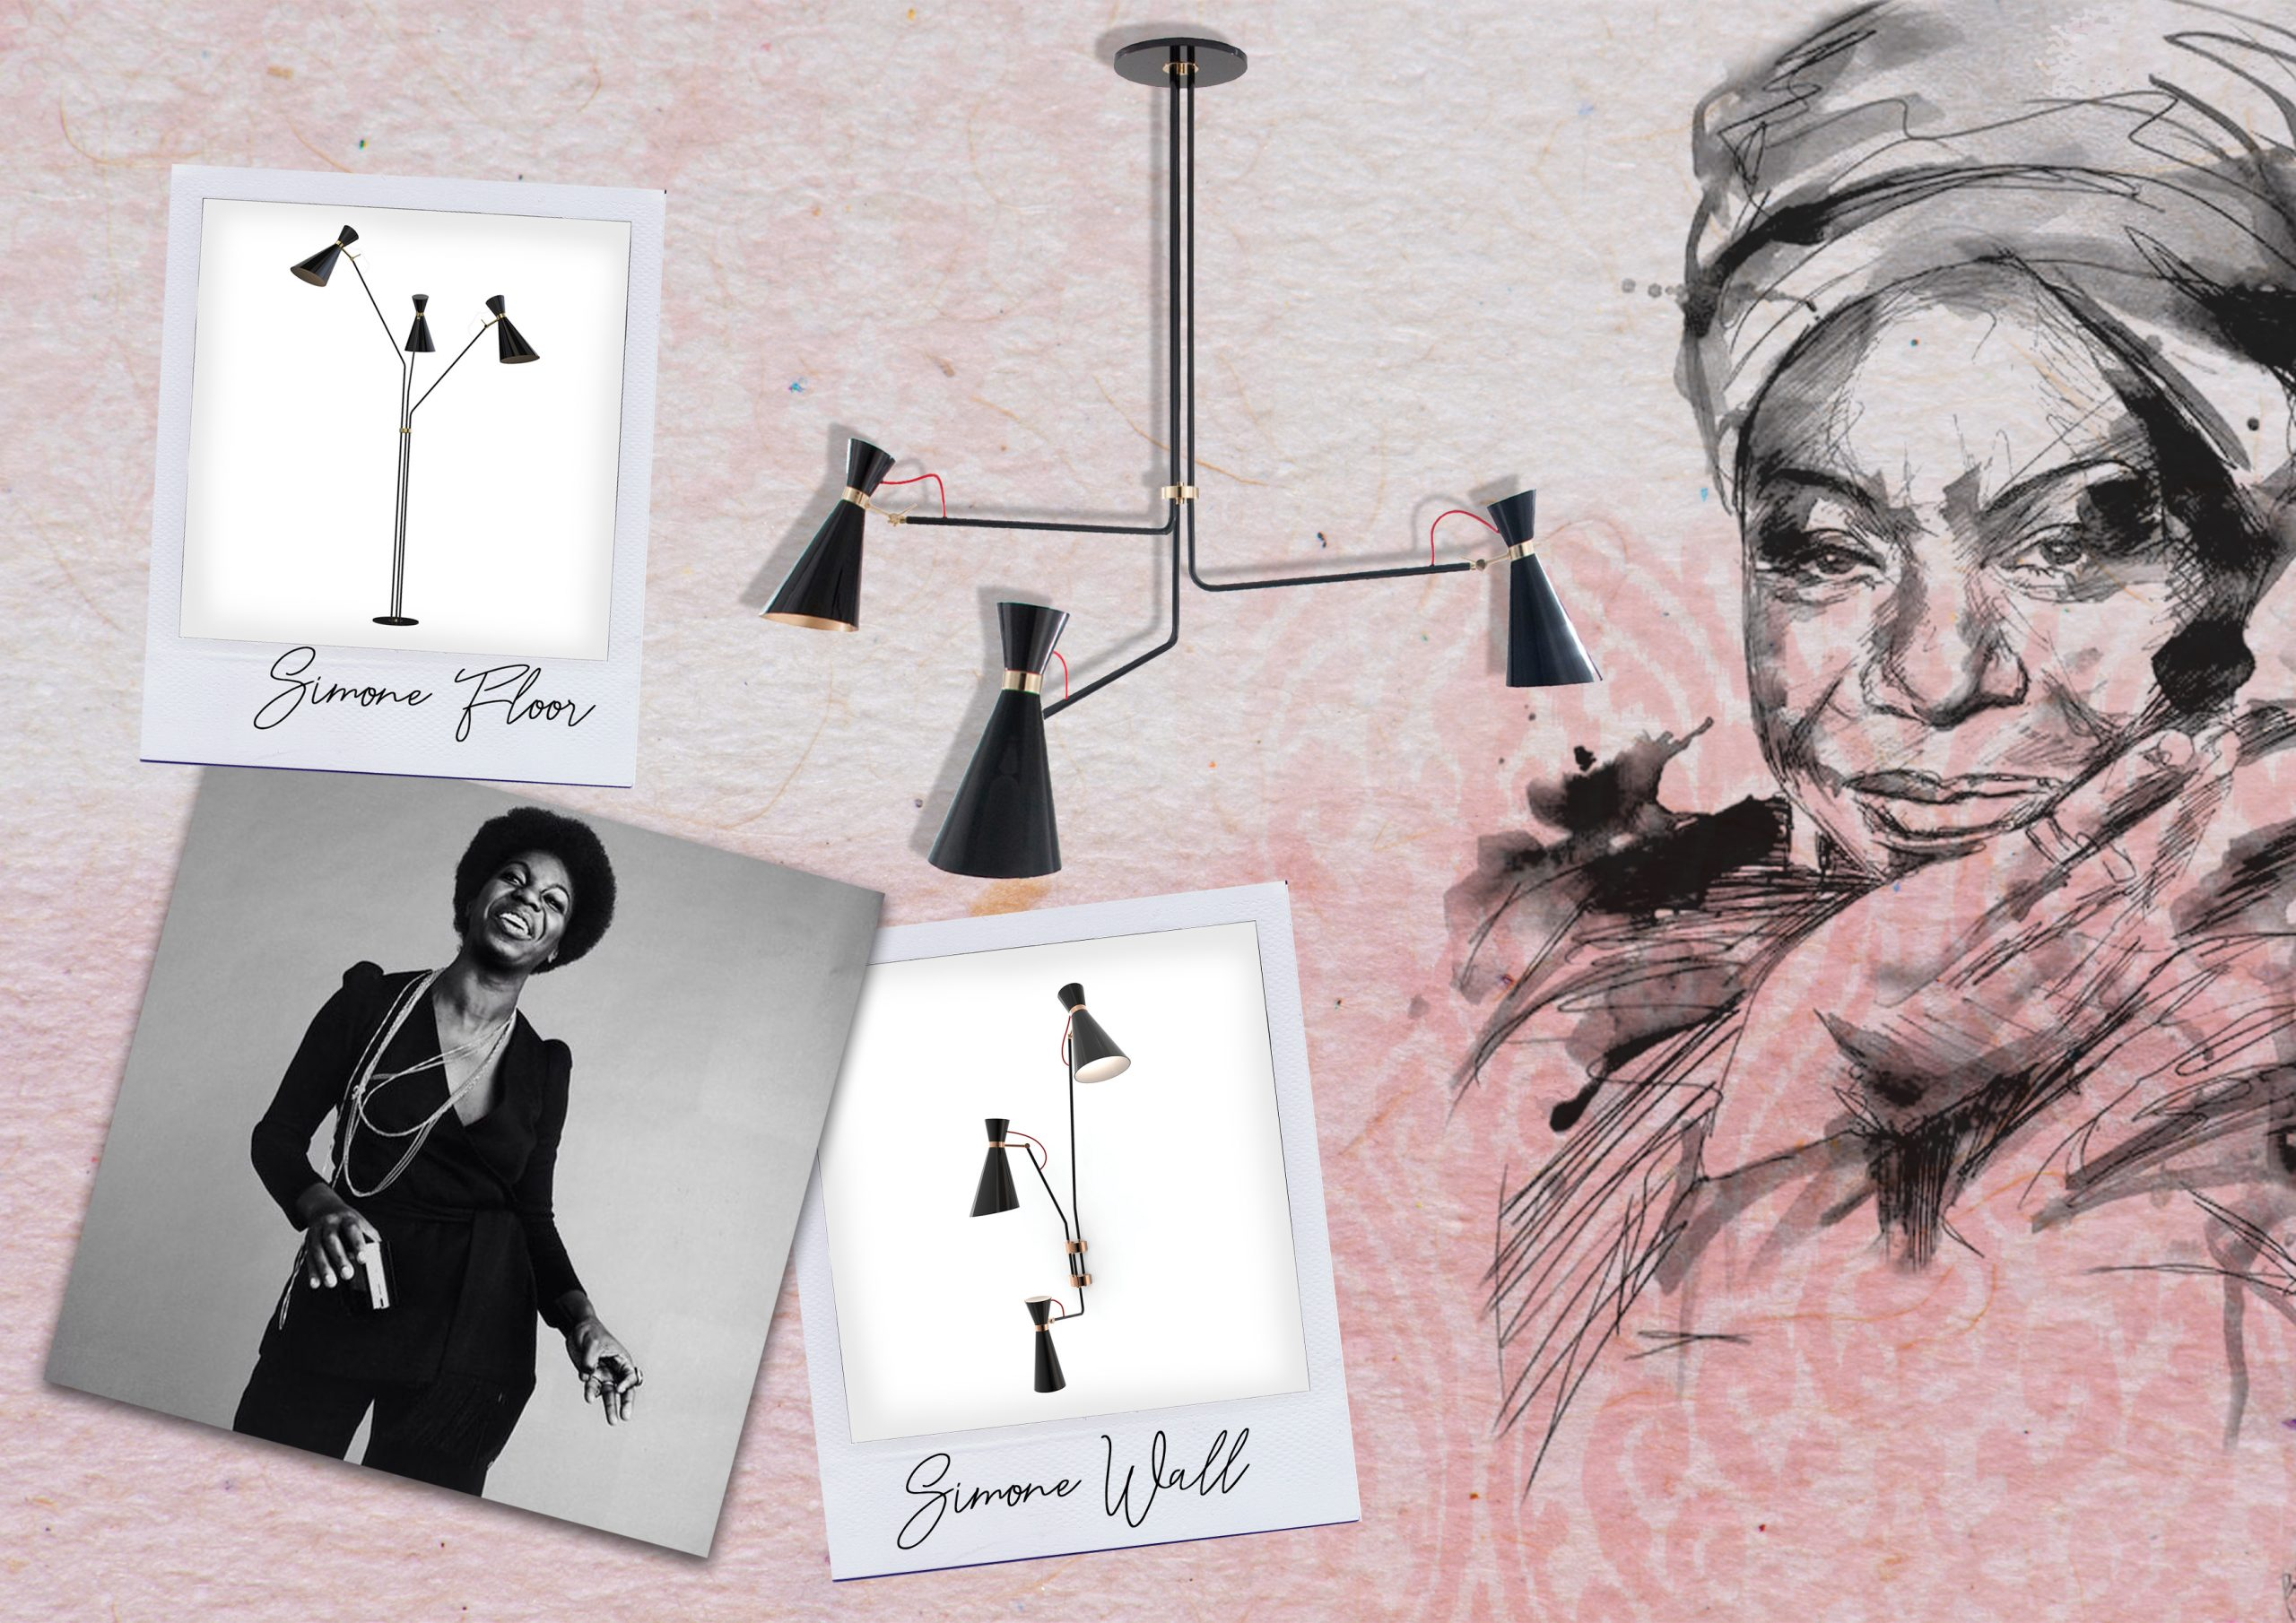 black history month black history month Celebrate Black History Month With These Unique Floor Lamps Ideas! Celebrate Black History Month With These Unique Floor Lamps Ideas3 scaled